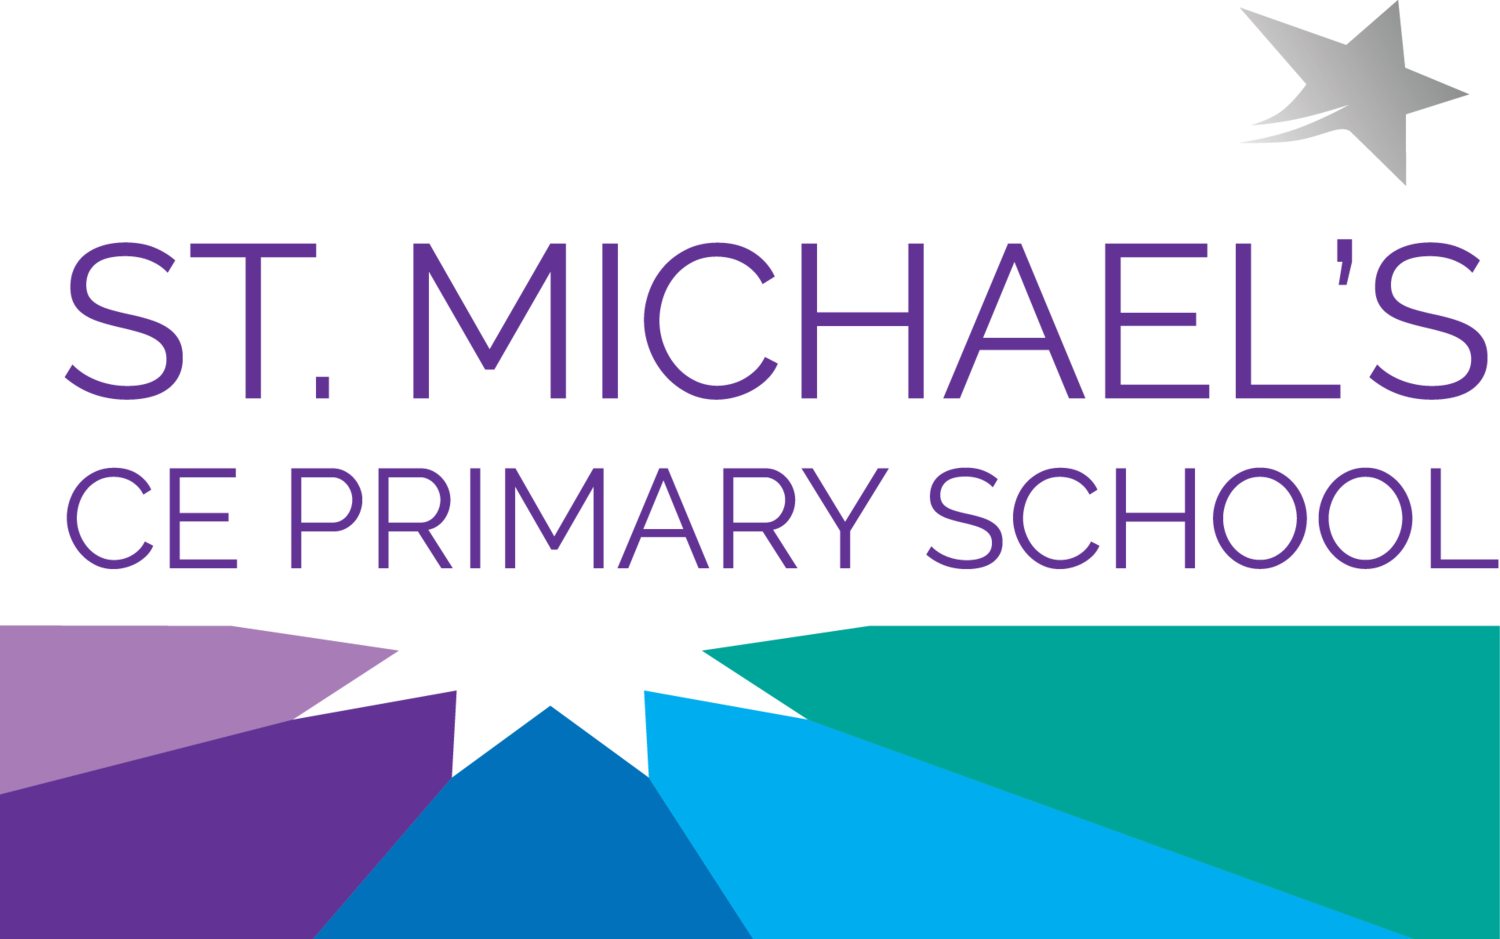 St. Michael's C of E Primary School